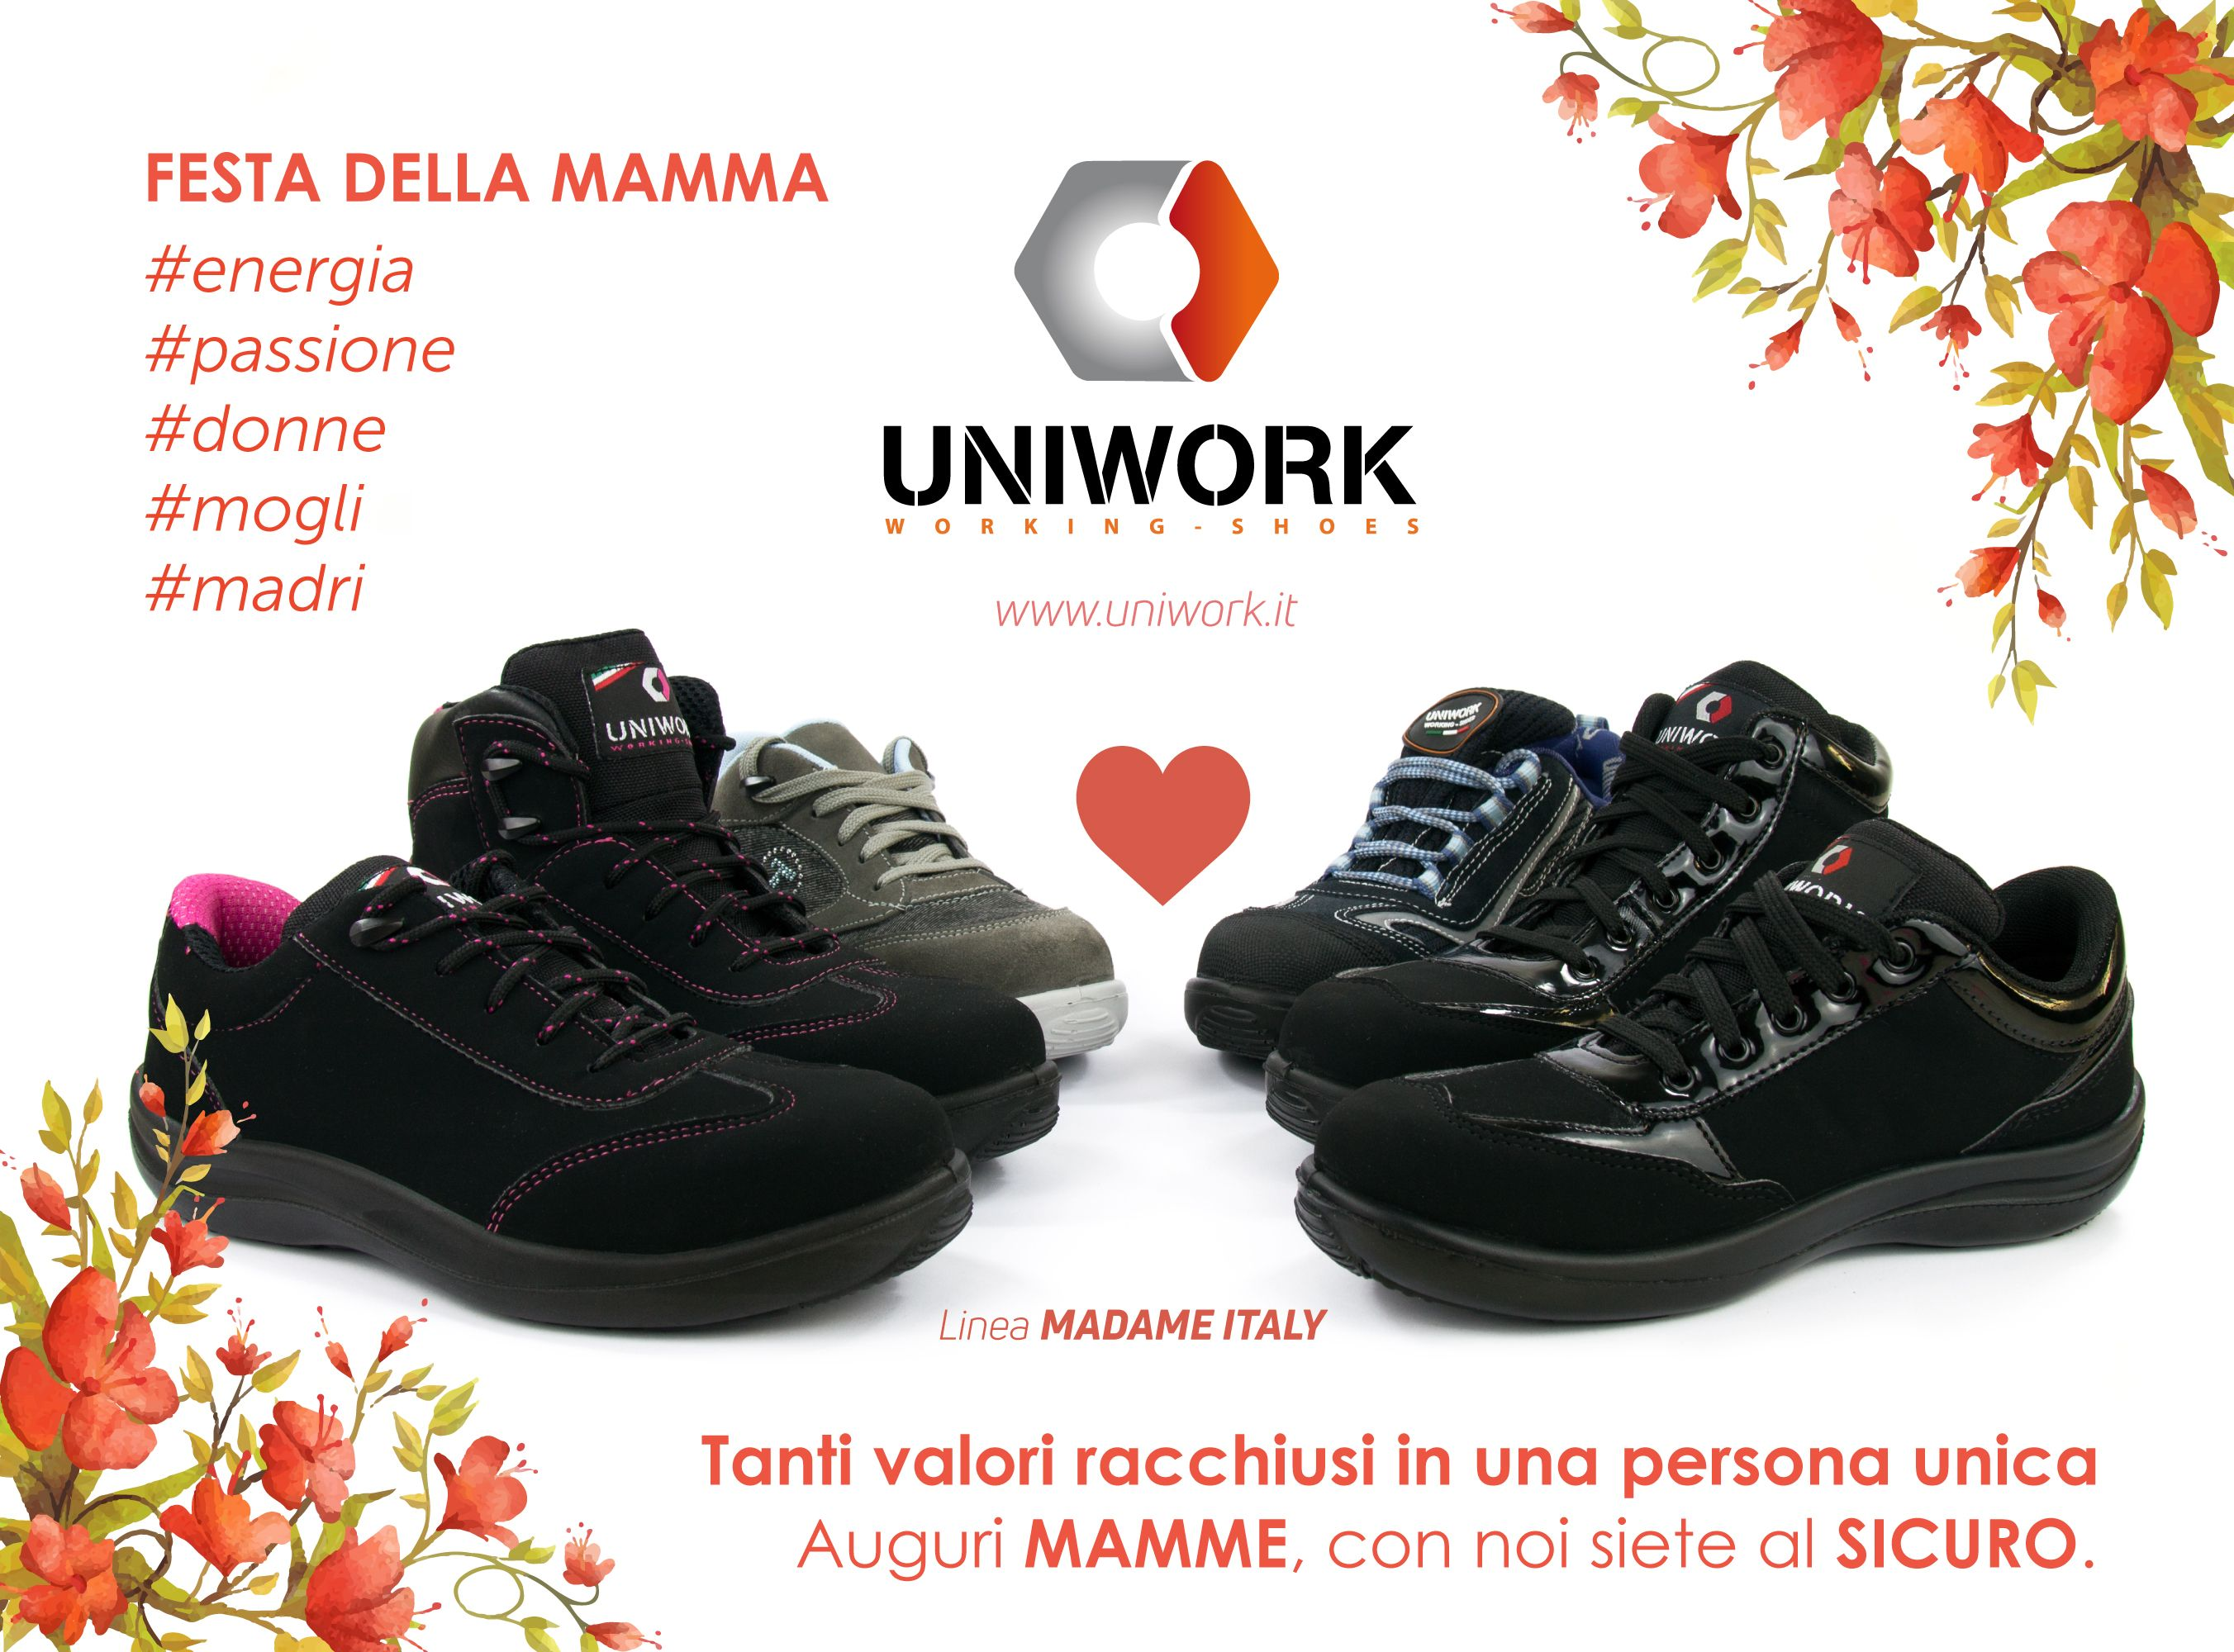 Uniwork Working Shoes Uniwork Profilo Pinterest